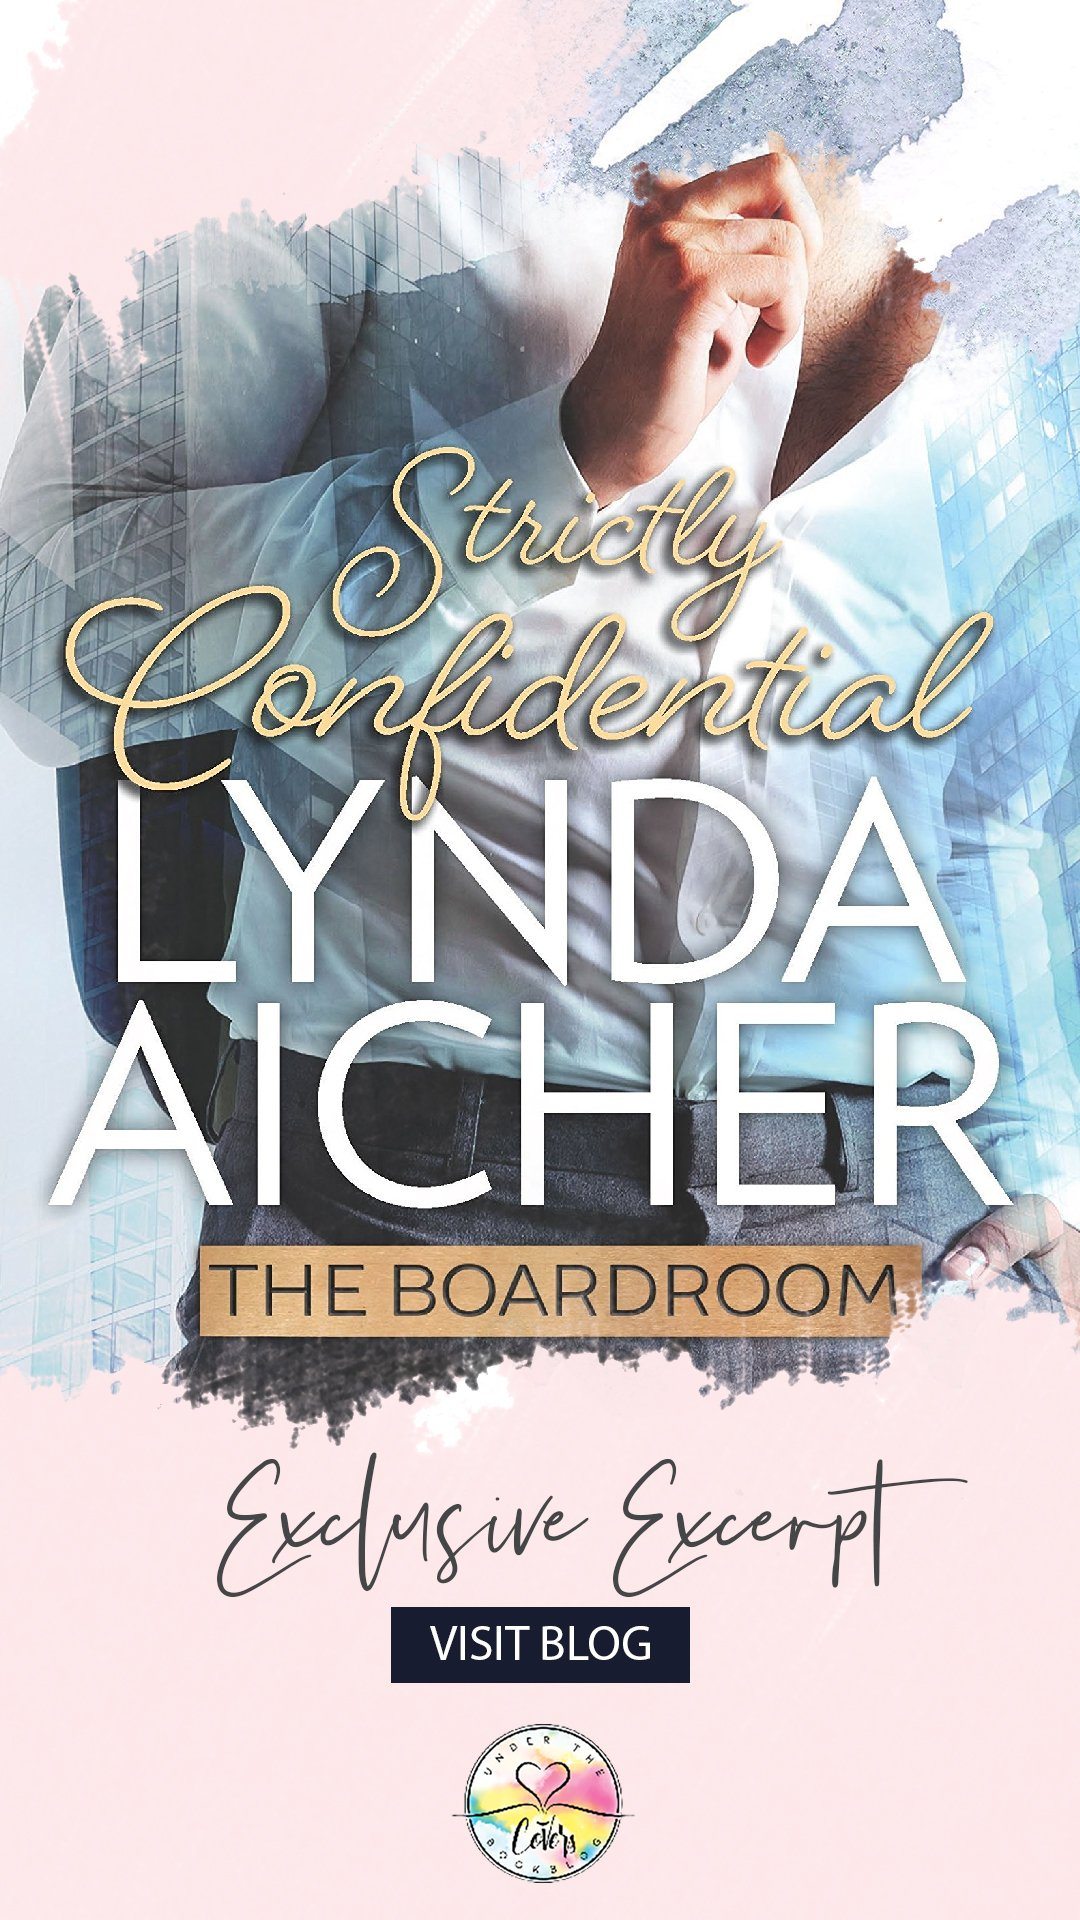 Author Override: Lynda Aicher